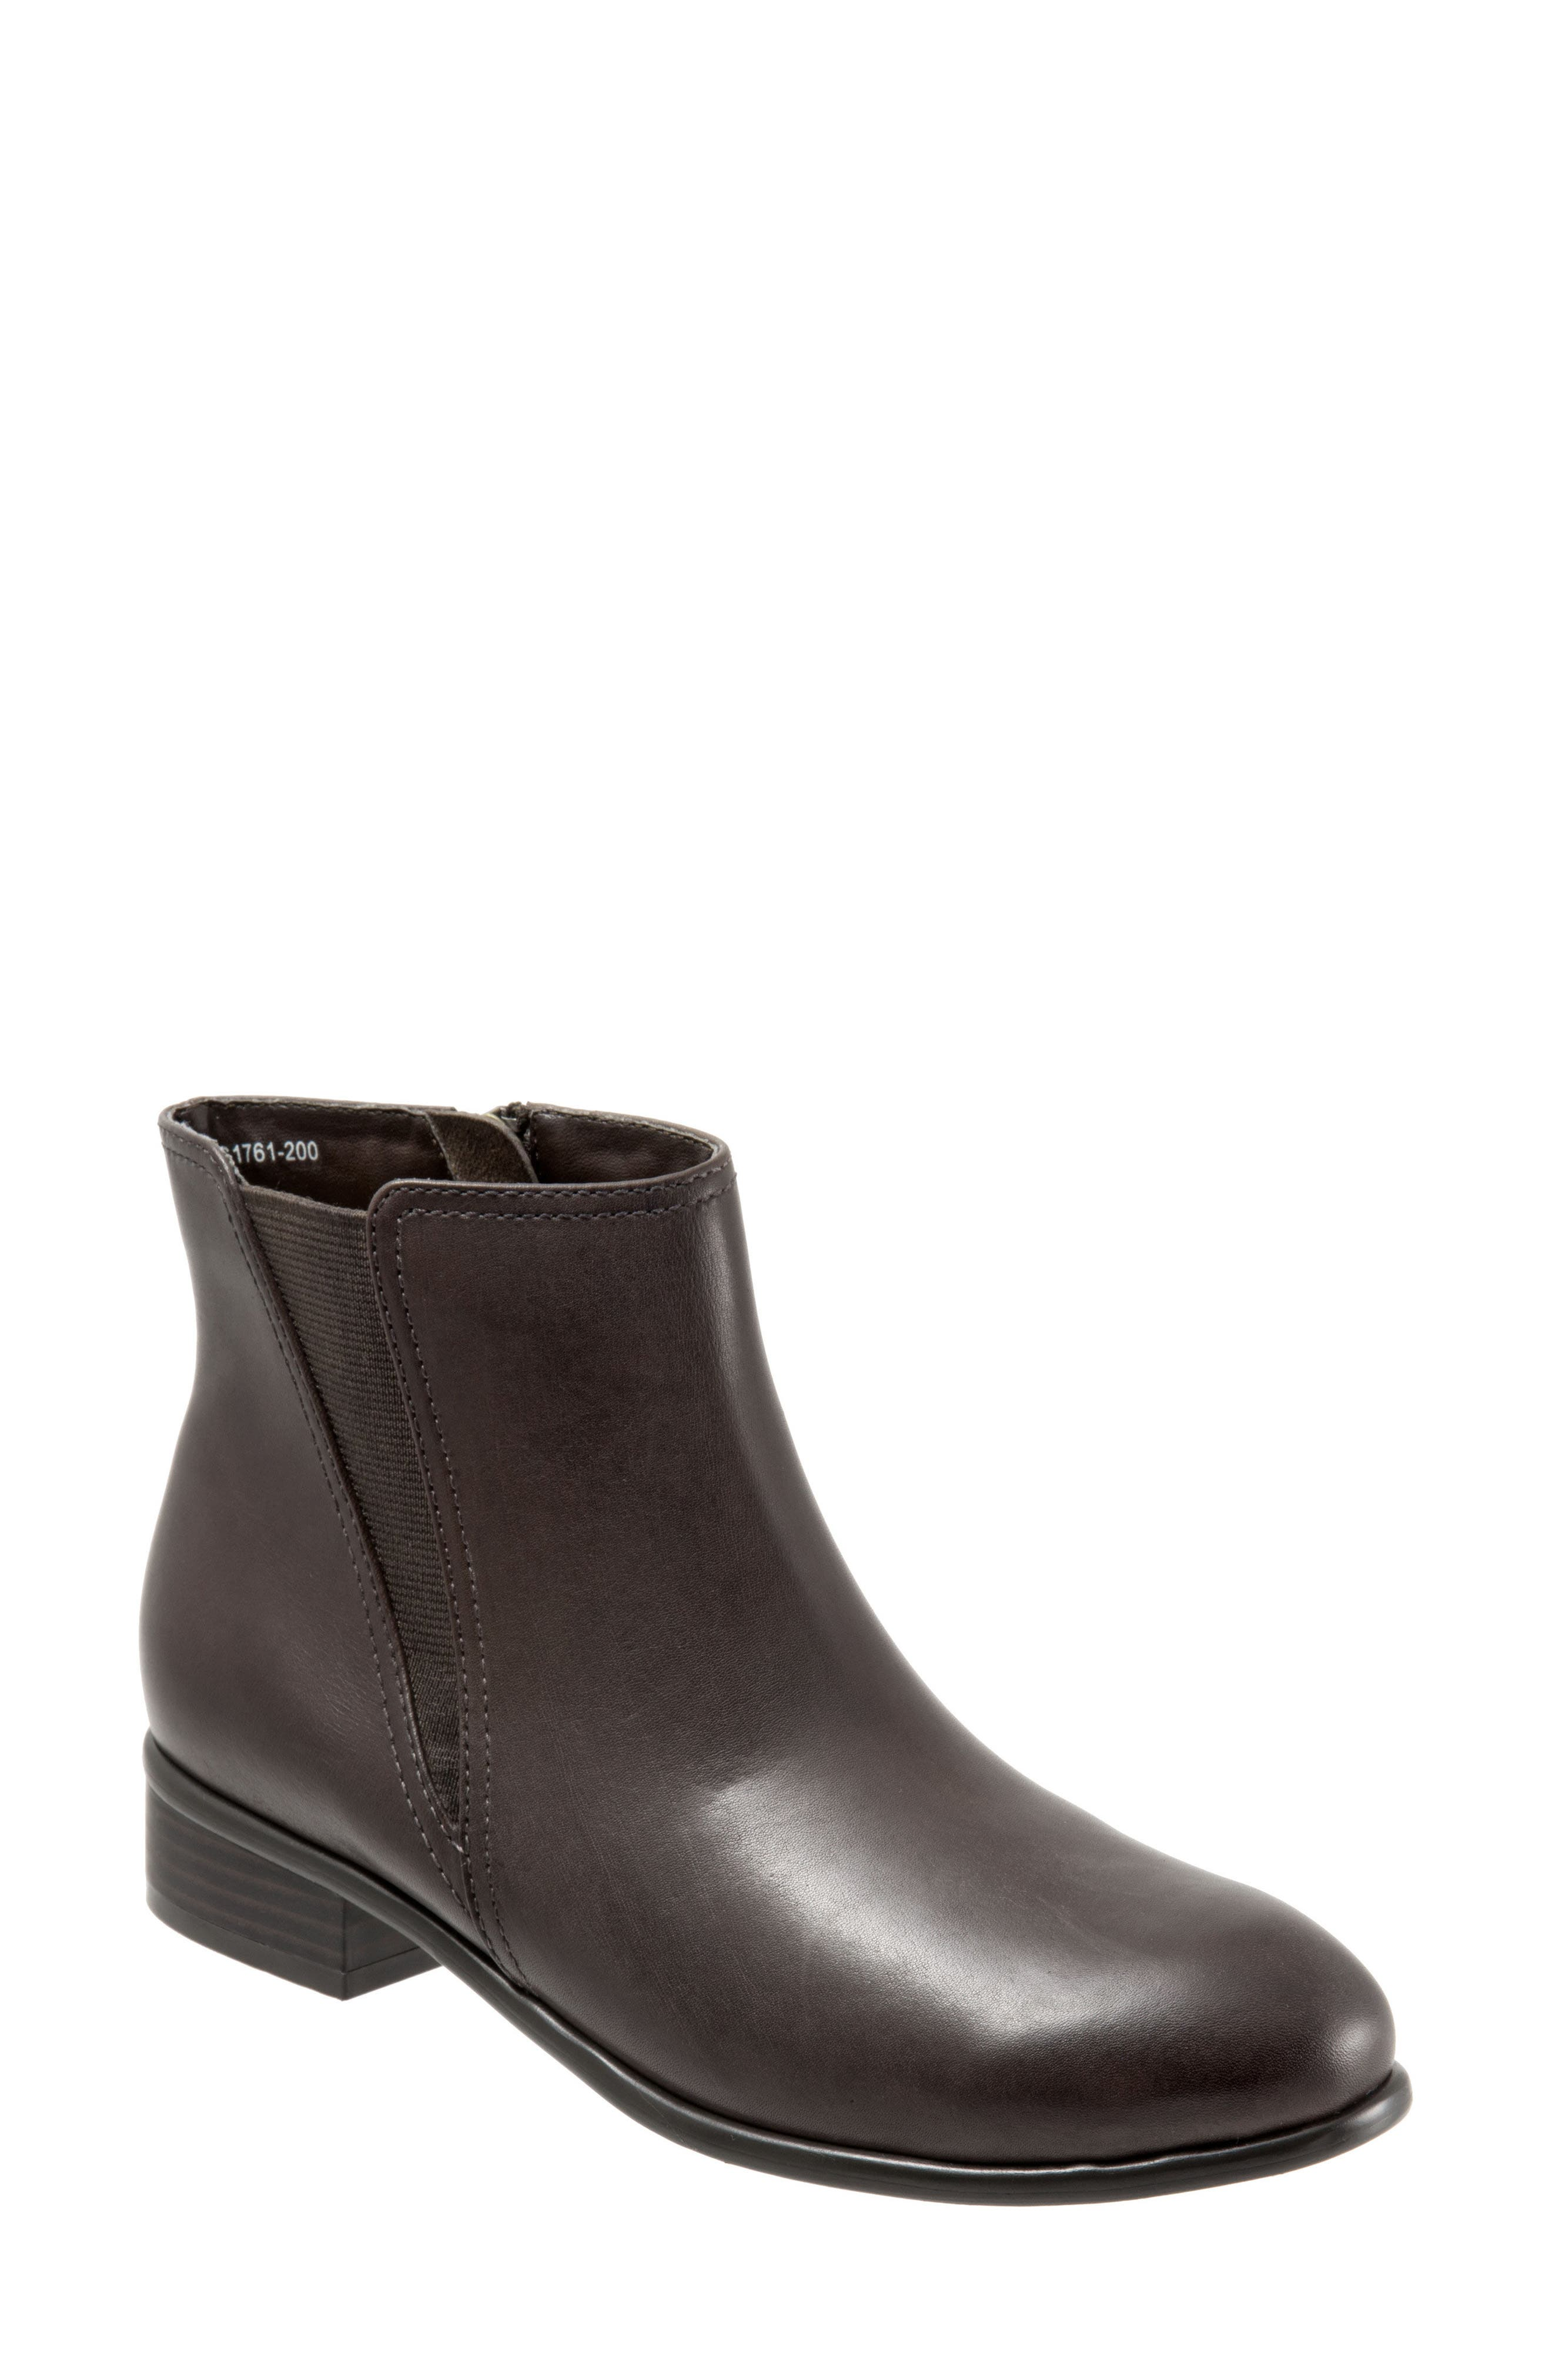 Urban Bootie,                             Main thumbnail 1, color,                             Dark Brown Leather